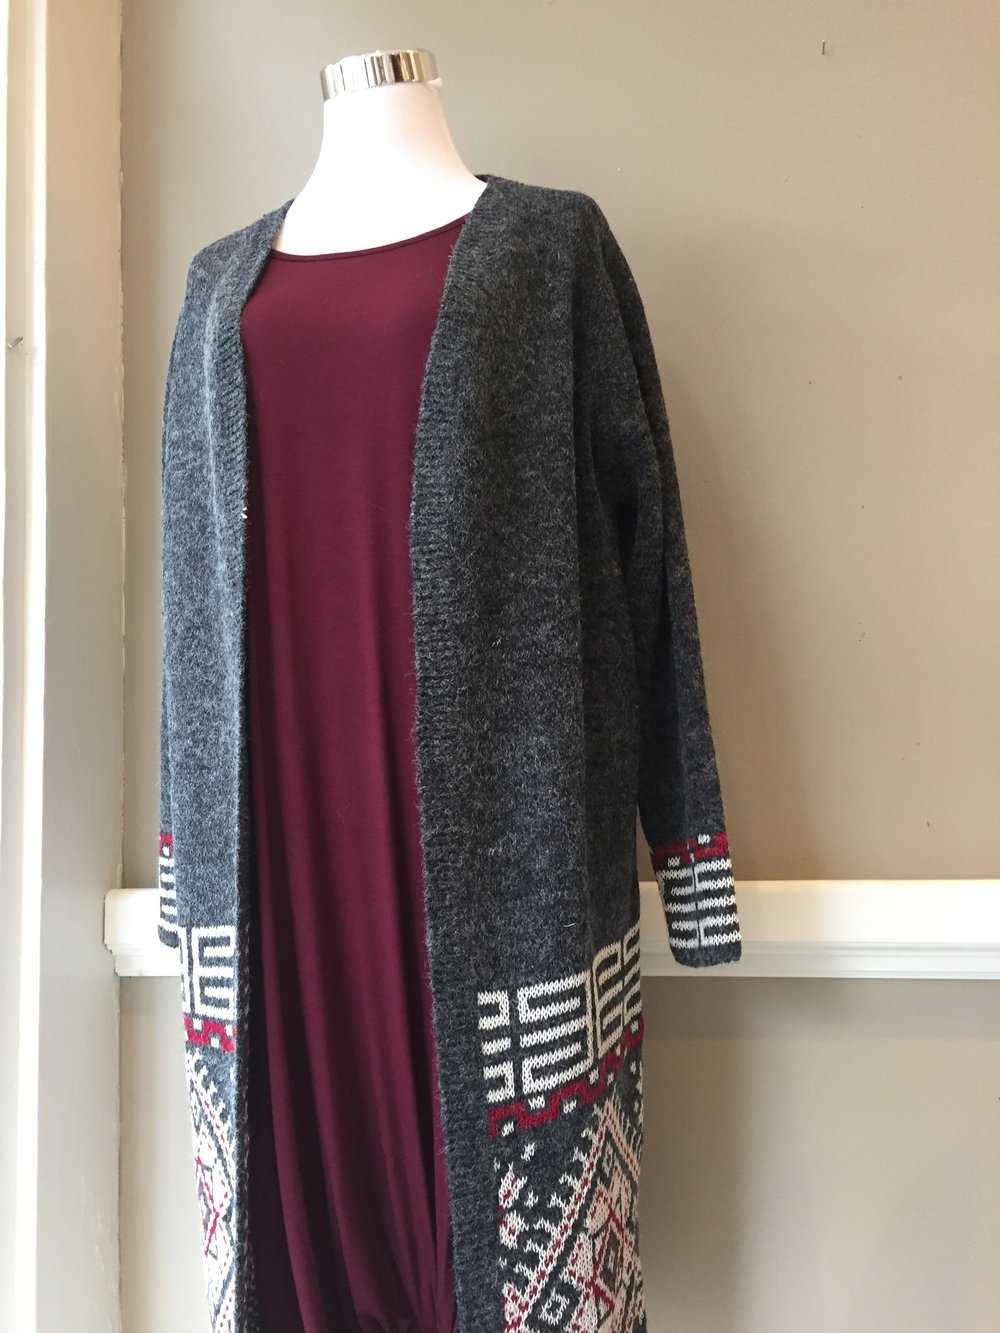 Charcoal and red duster ($45)